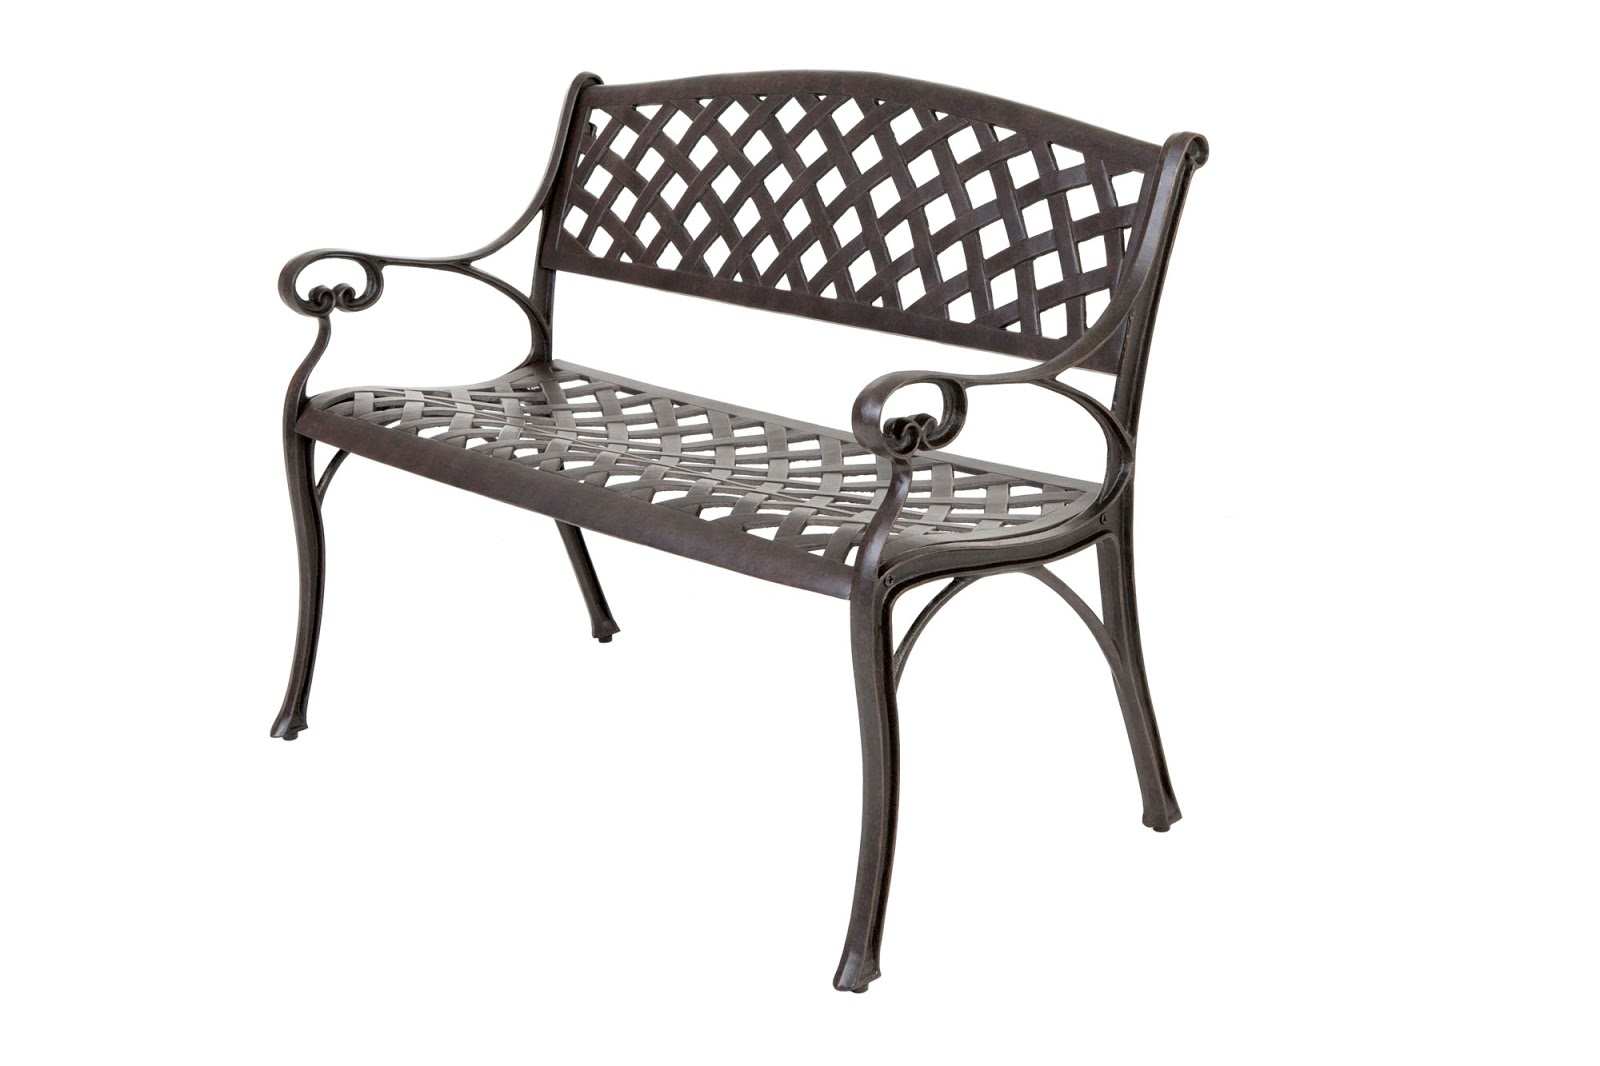 Aliwor00000636 word Cutout Inspiration additionally Kitchen Cabi  Handleskitchen Cabi  Handles moreover One For All Digital Aerial also Disney Silhouette Cliparts together with Free Cast Aluminium Garden Bistro Set. on white iron outdoor furniture